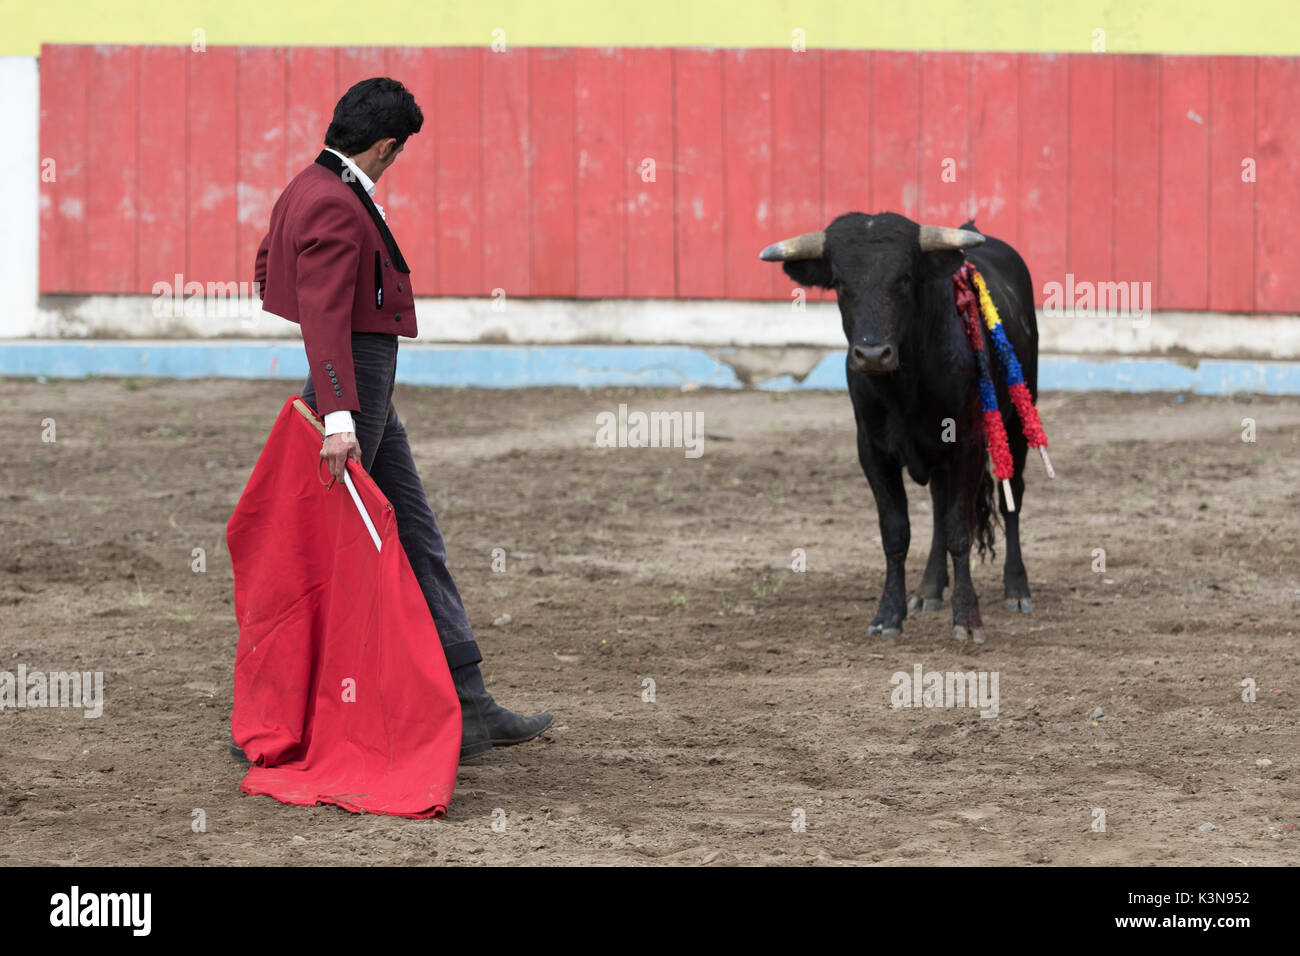 June 18, 2017 Pujili, Ecuador: bullfighter stnads in front of bull in a challenging way in the arena - Stock Image